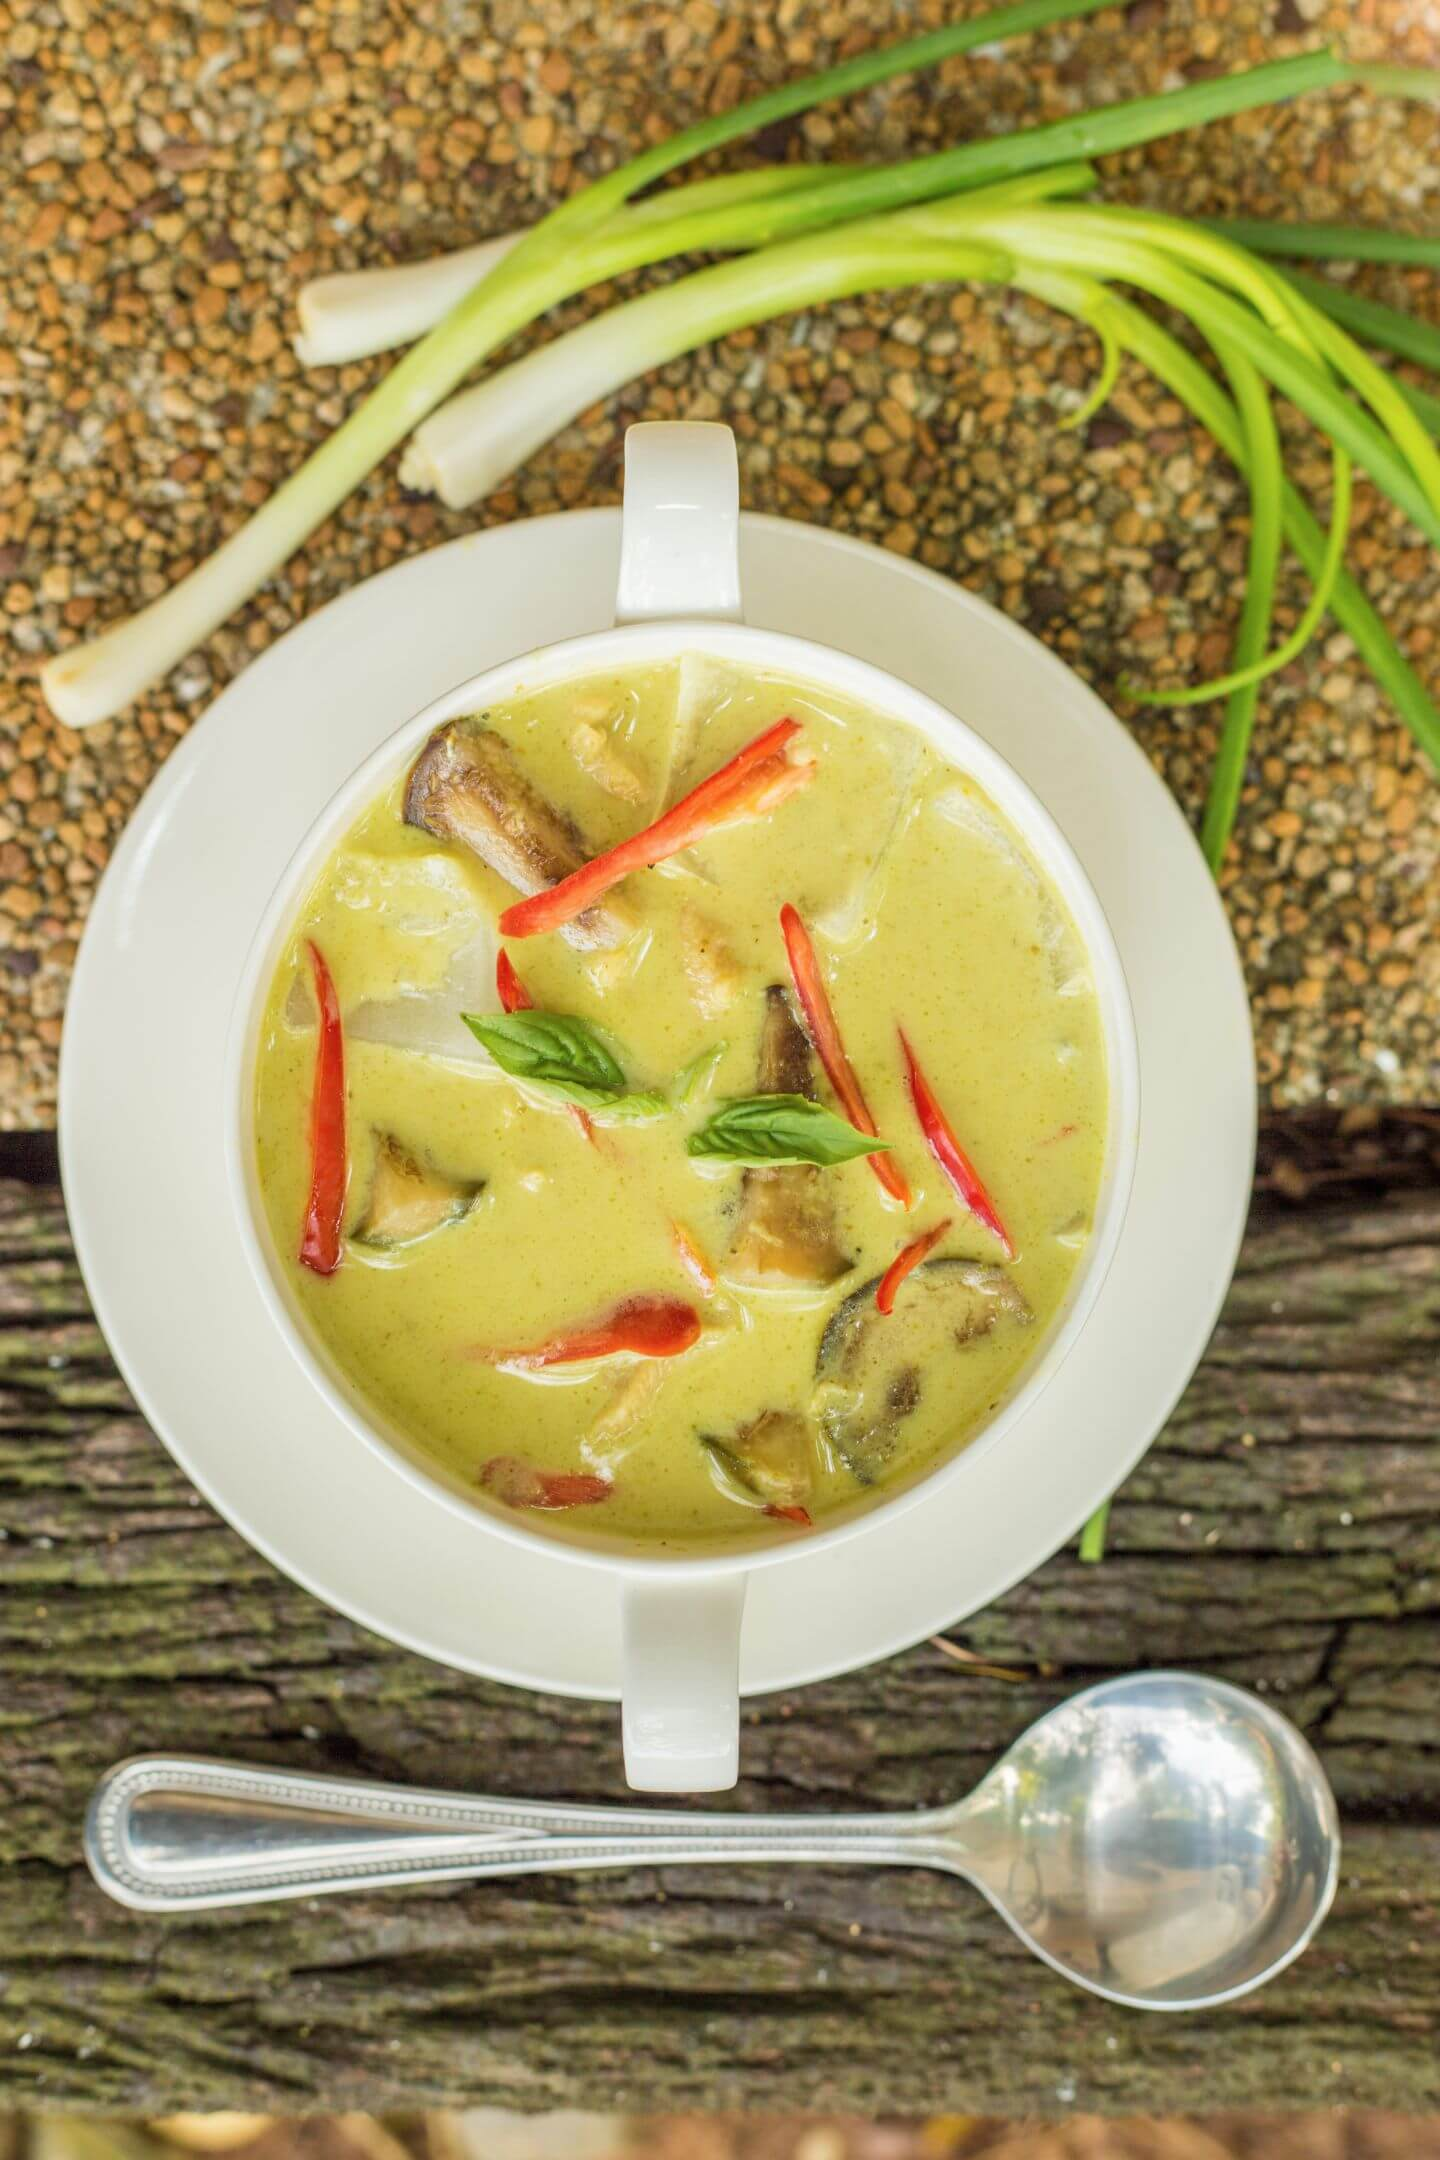 creamy soup of luxury hotel Karma Royal Phuket Cuisine